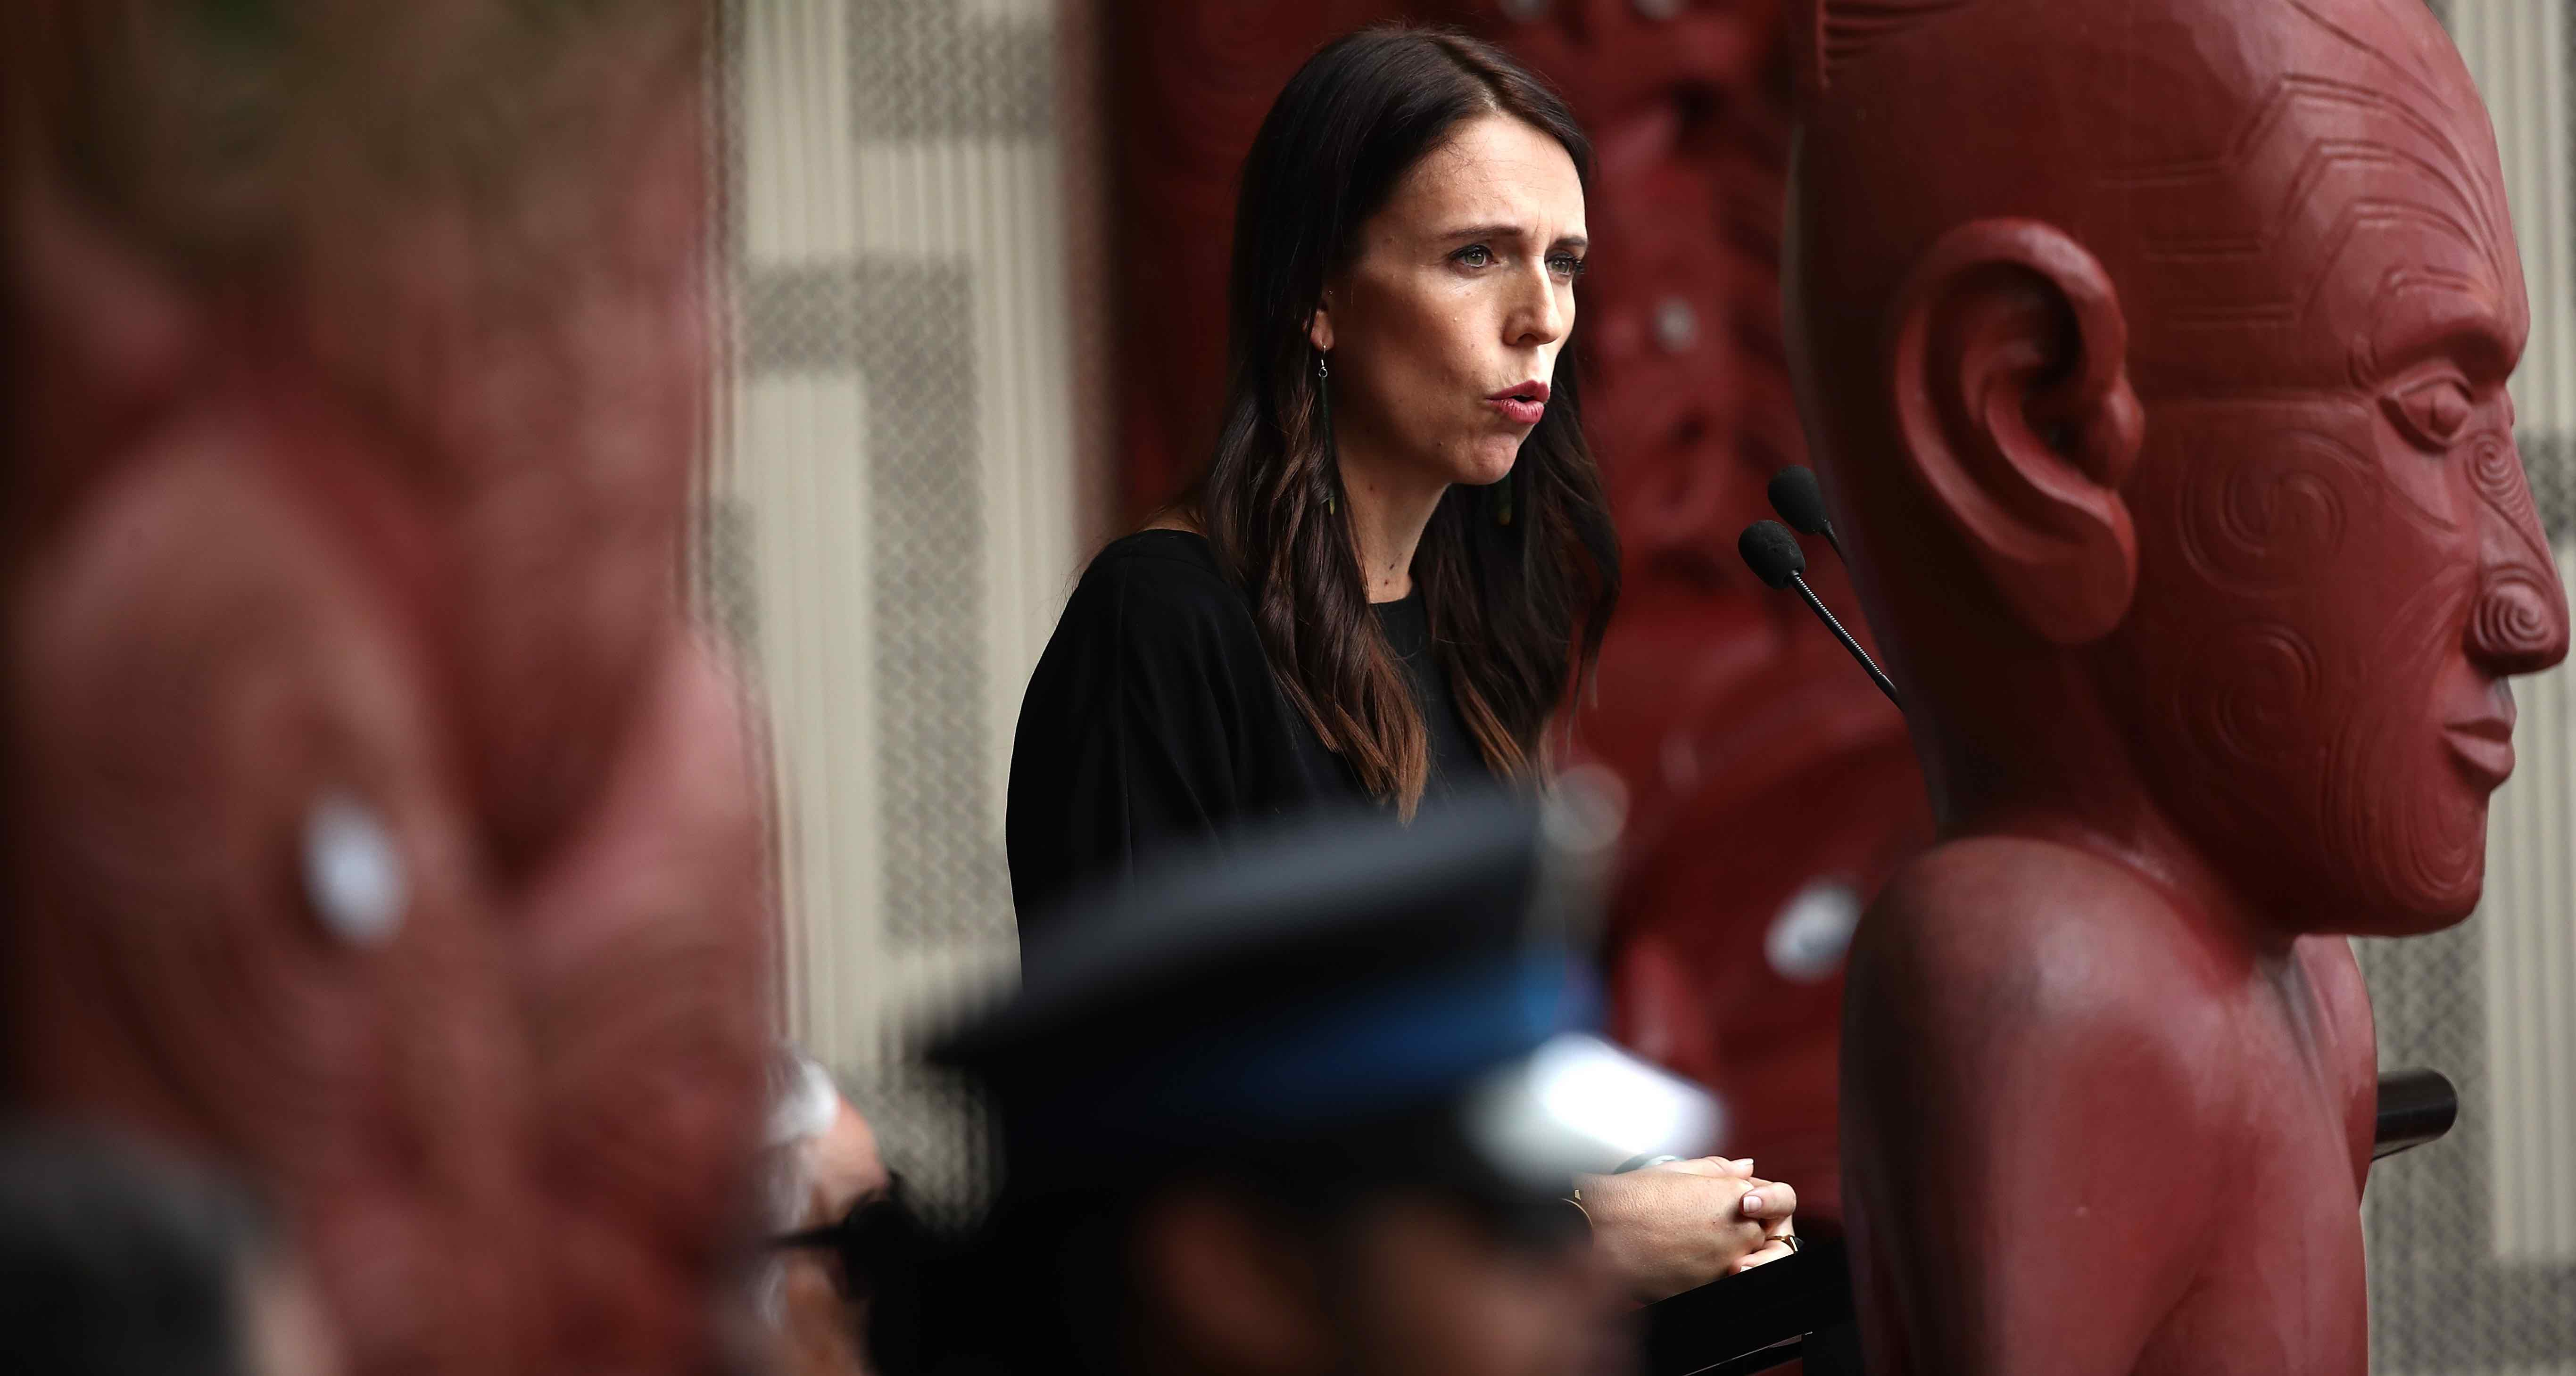 New Zealand Prime Minister Jacinda Ardern at Waitangi Treaty Grounds last month (Photo: Phil Walter/Getty)